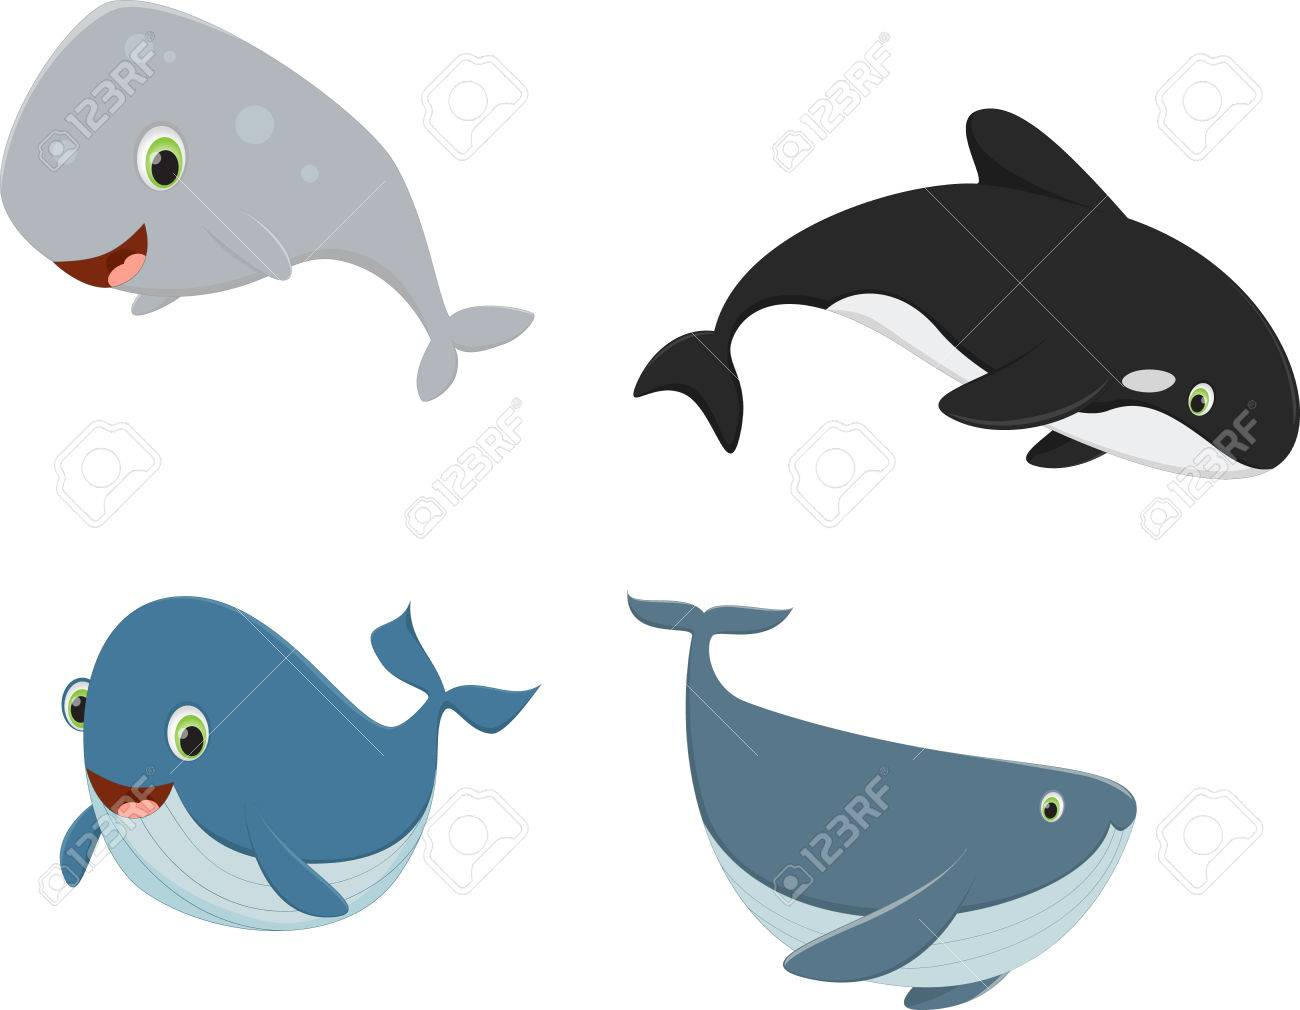 four cartoon whales royalty free cliparts vectors and stock rh 123rf com Cartoon Turtle cartoon whales pictures